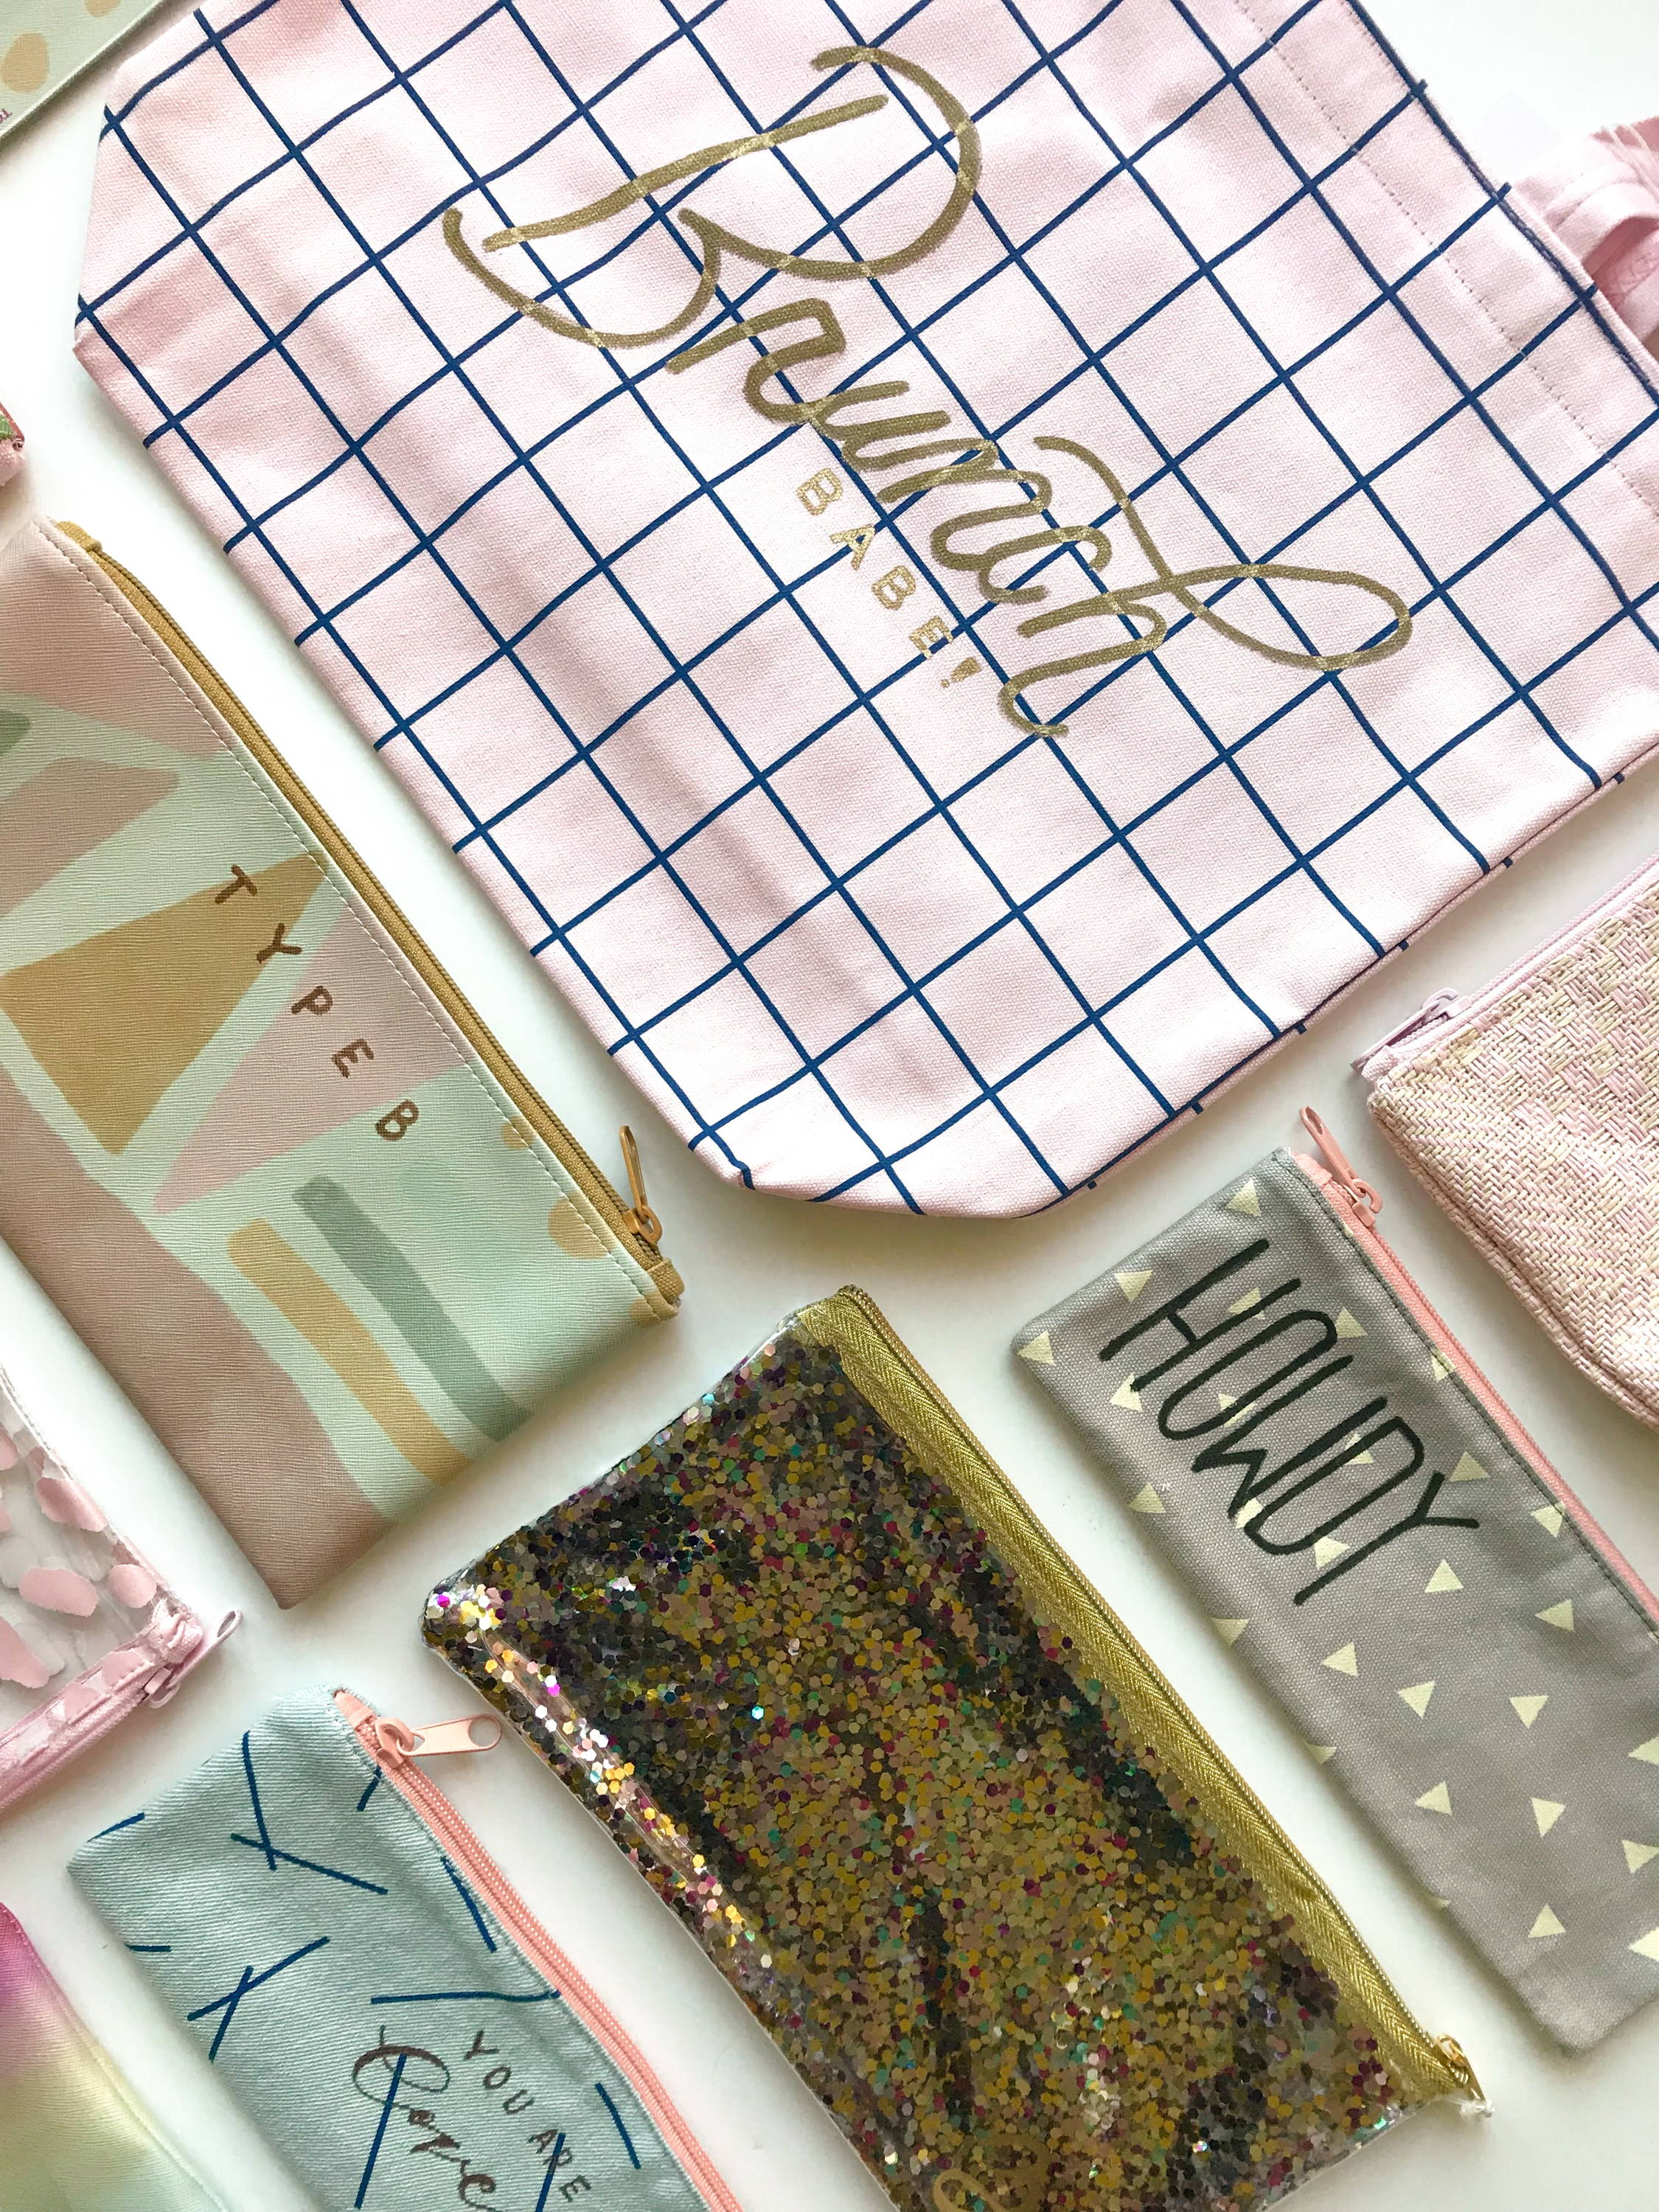 Cute pencil pouches with Viv Jordan's hand lettering designs.